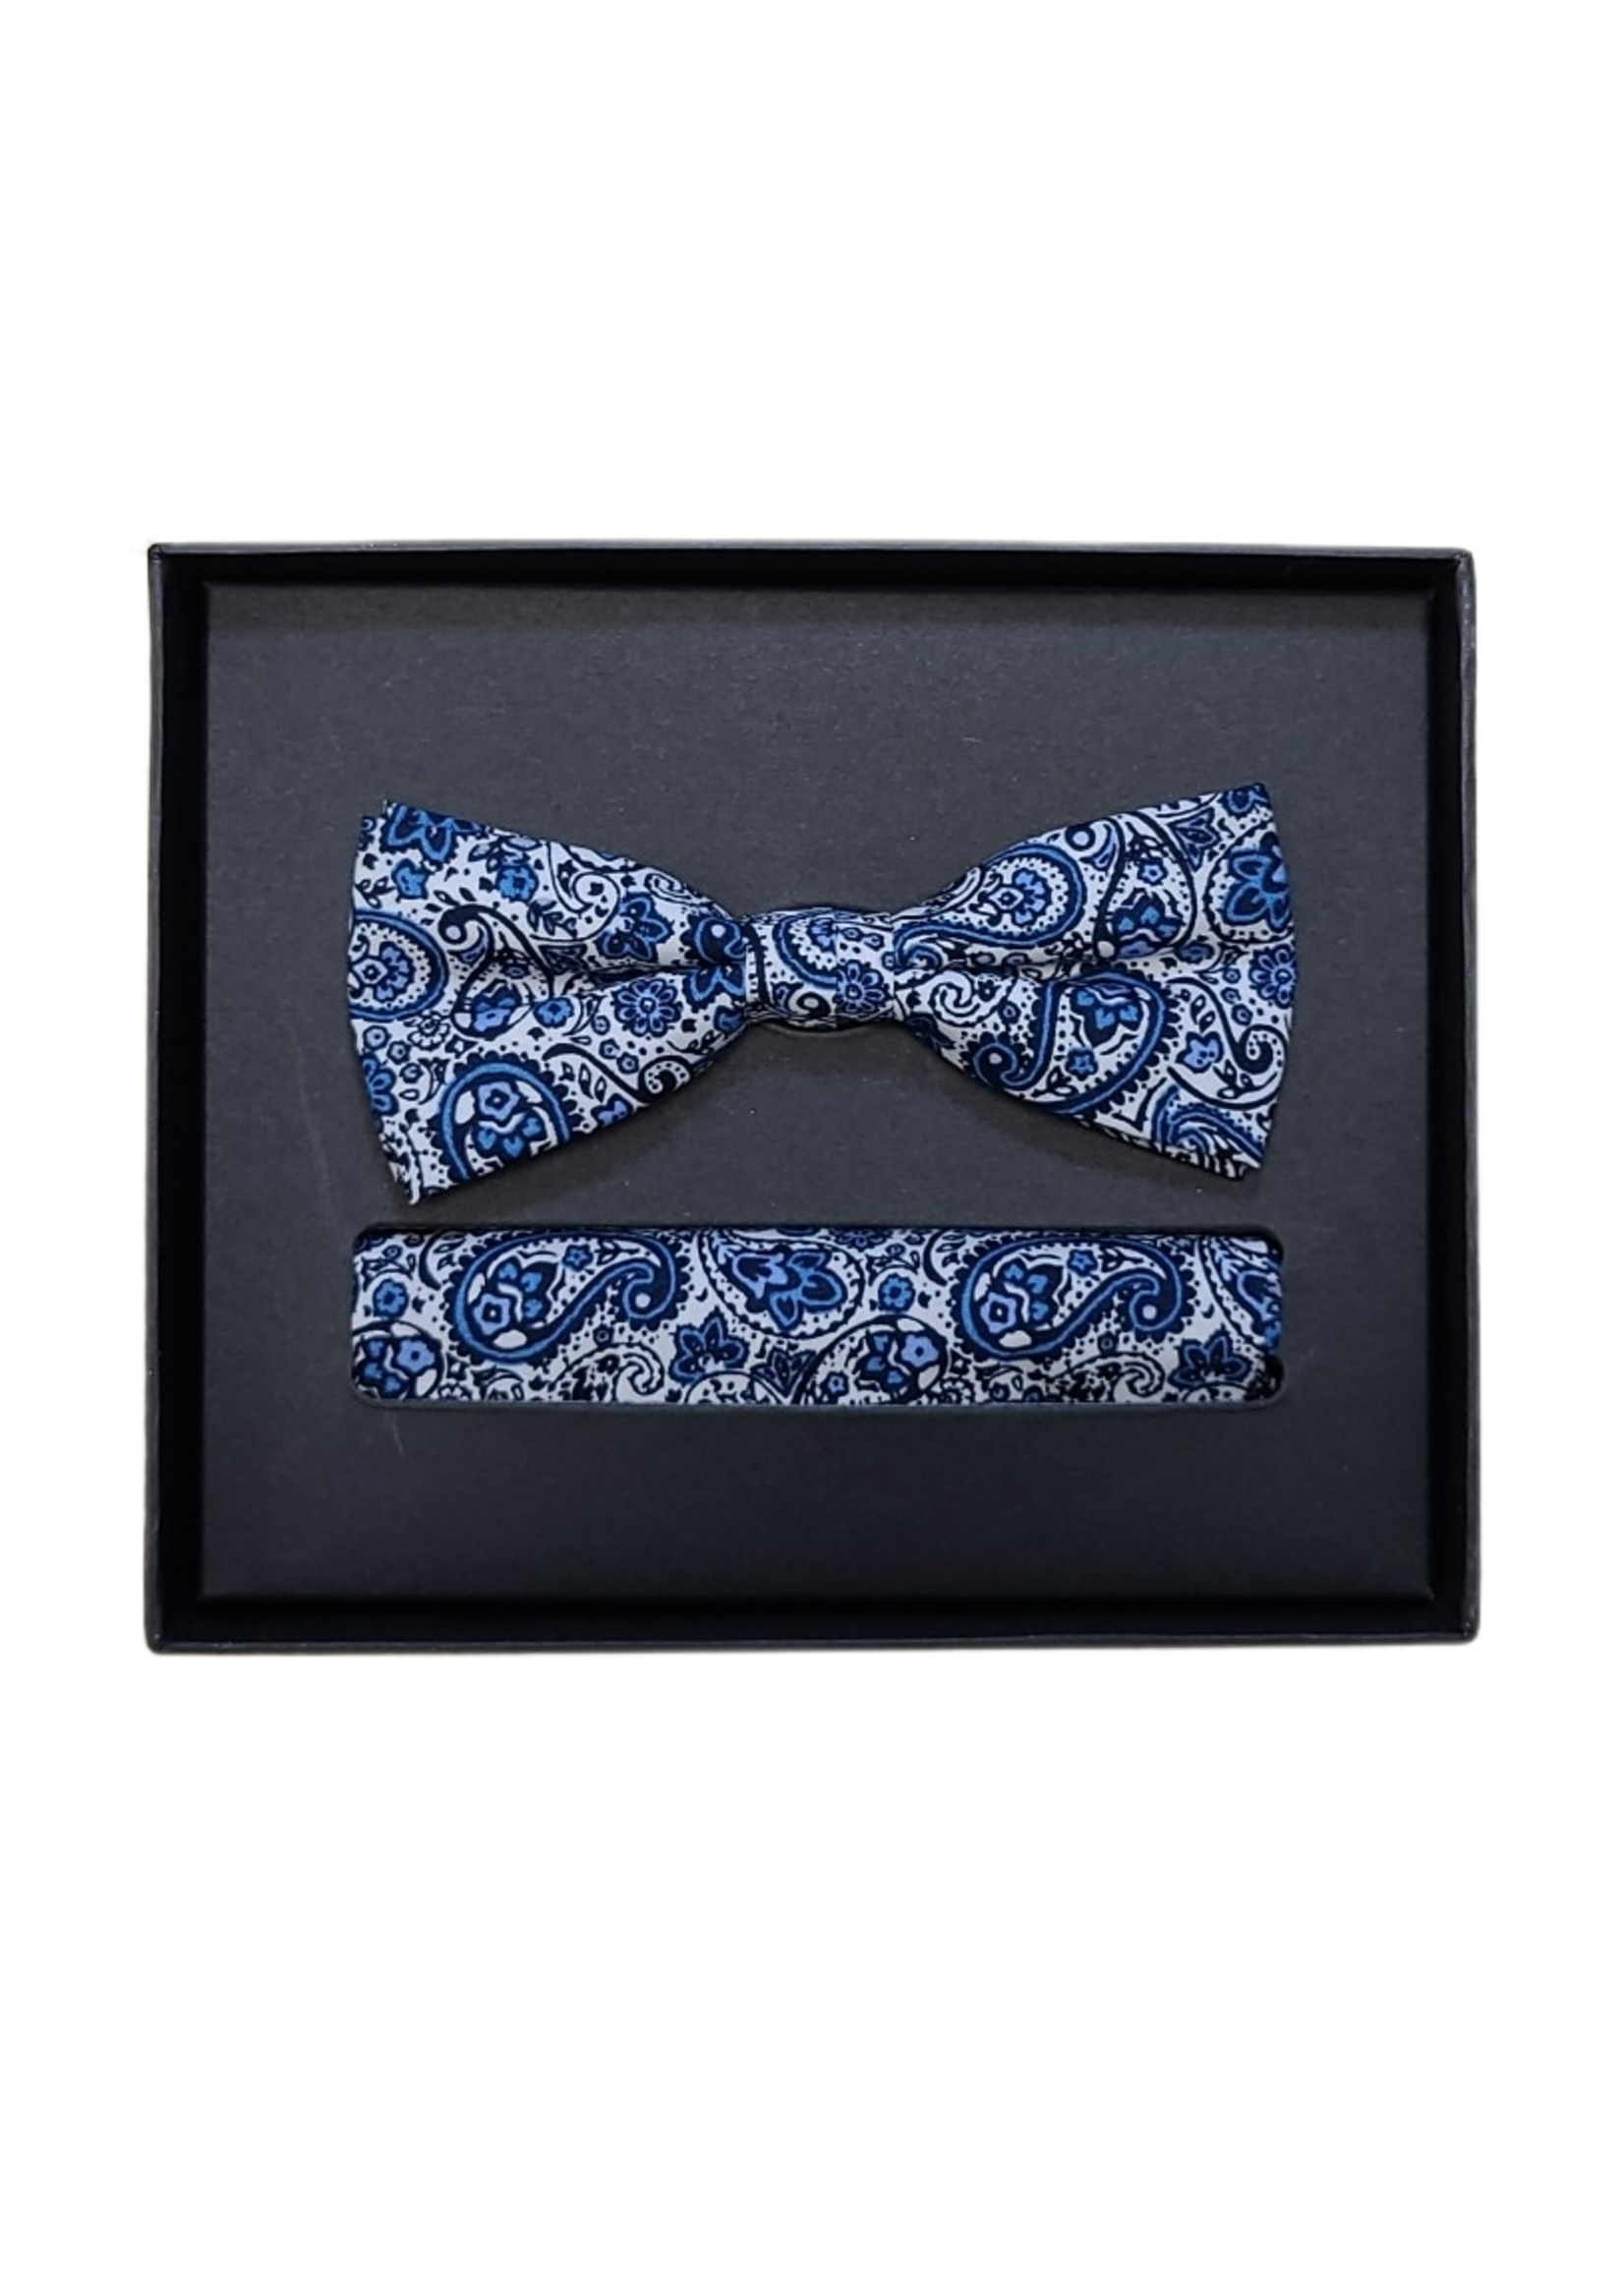 Venti Venti Bow Tie & Pocket Square 5398